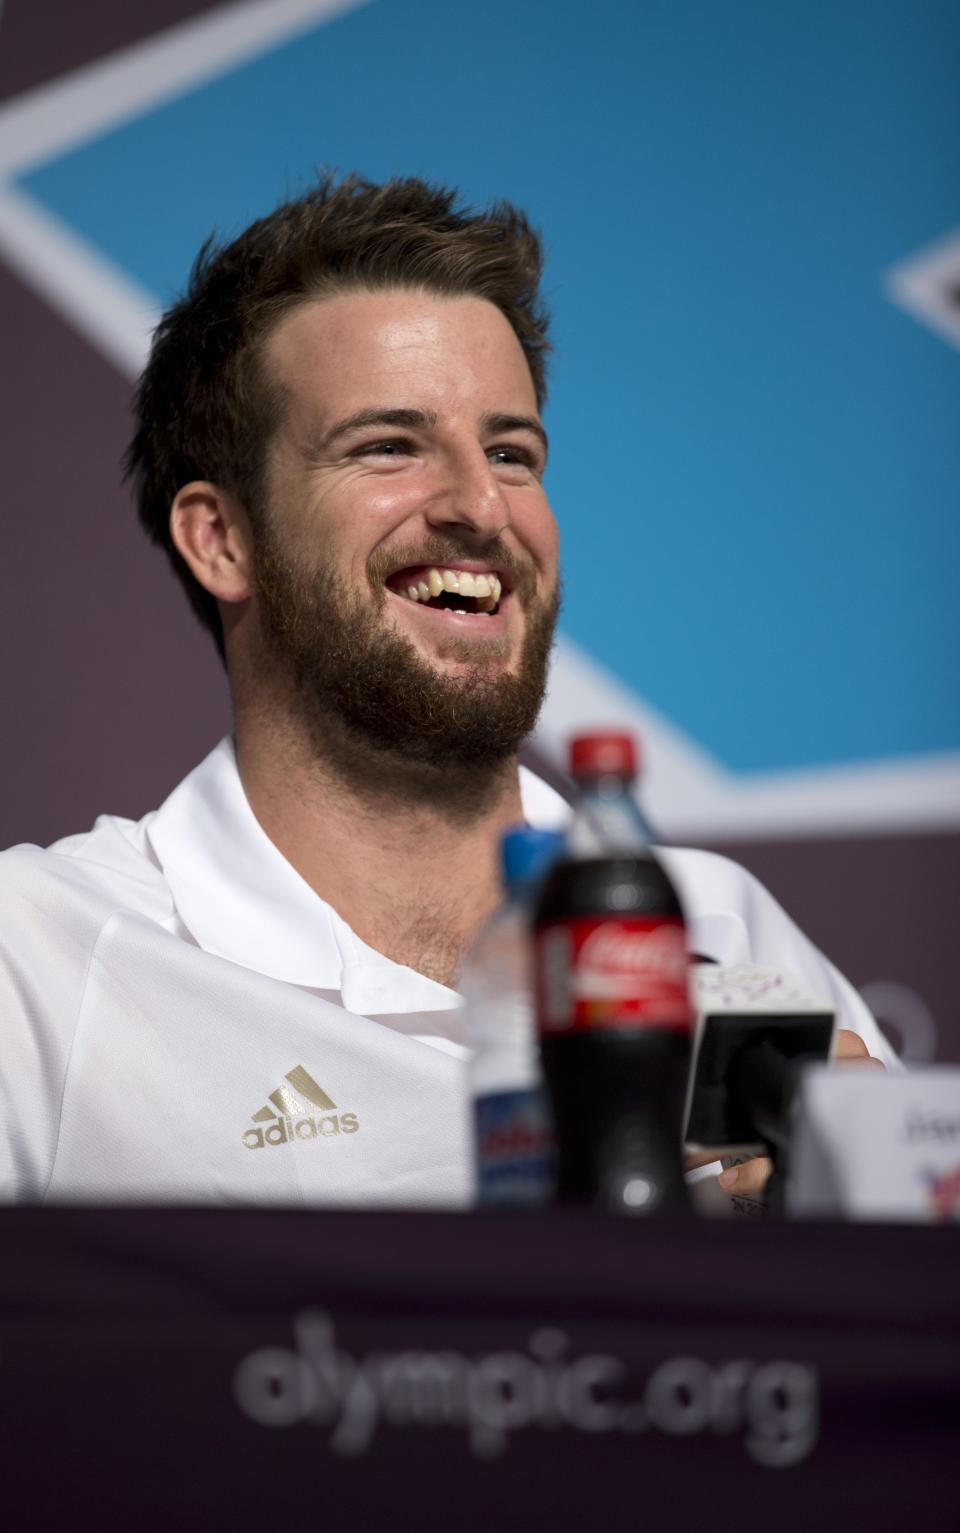 Australian swimmer James Magnussen laughs during a news conference at the Main Press Center ahead of the 2012 Summer Olympics, Monday, July 23, 2012, in London. (AP Photo/Matt Dunham)